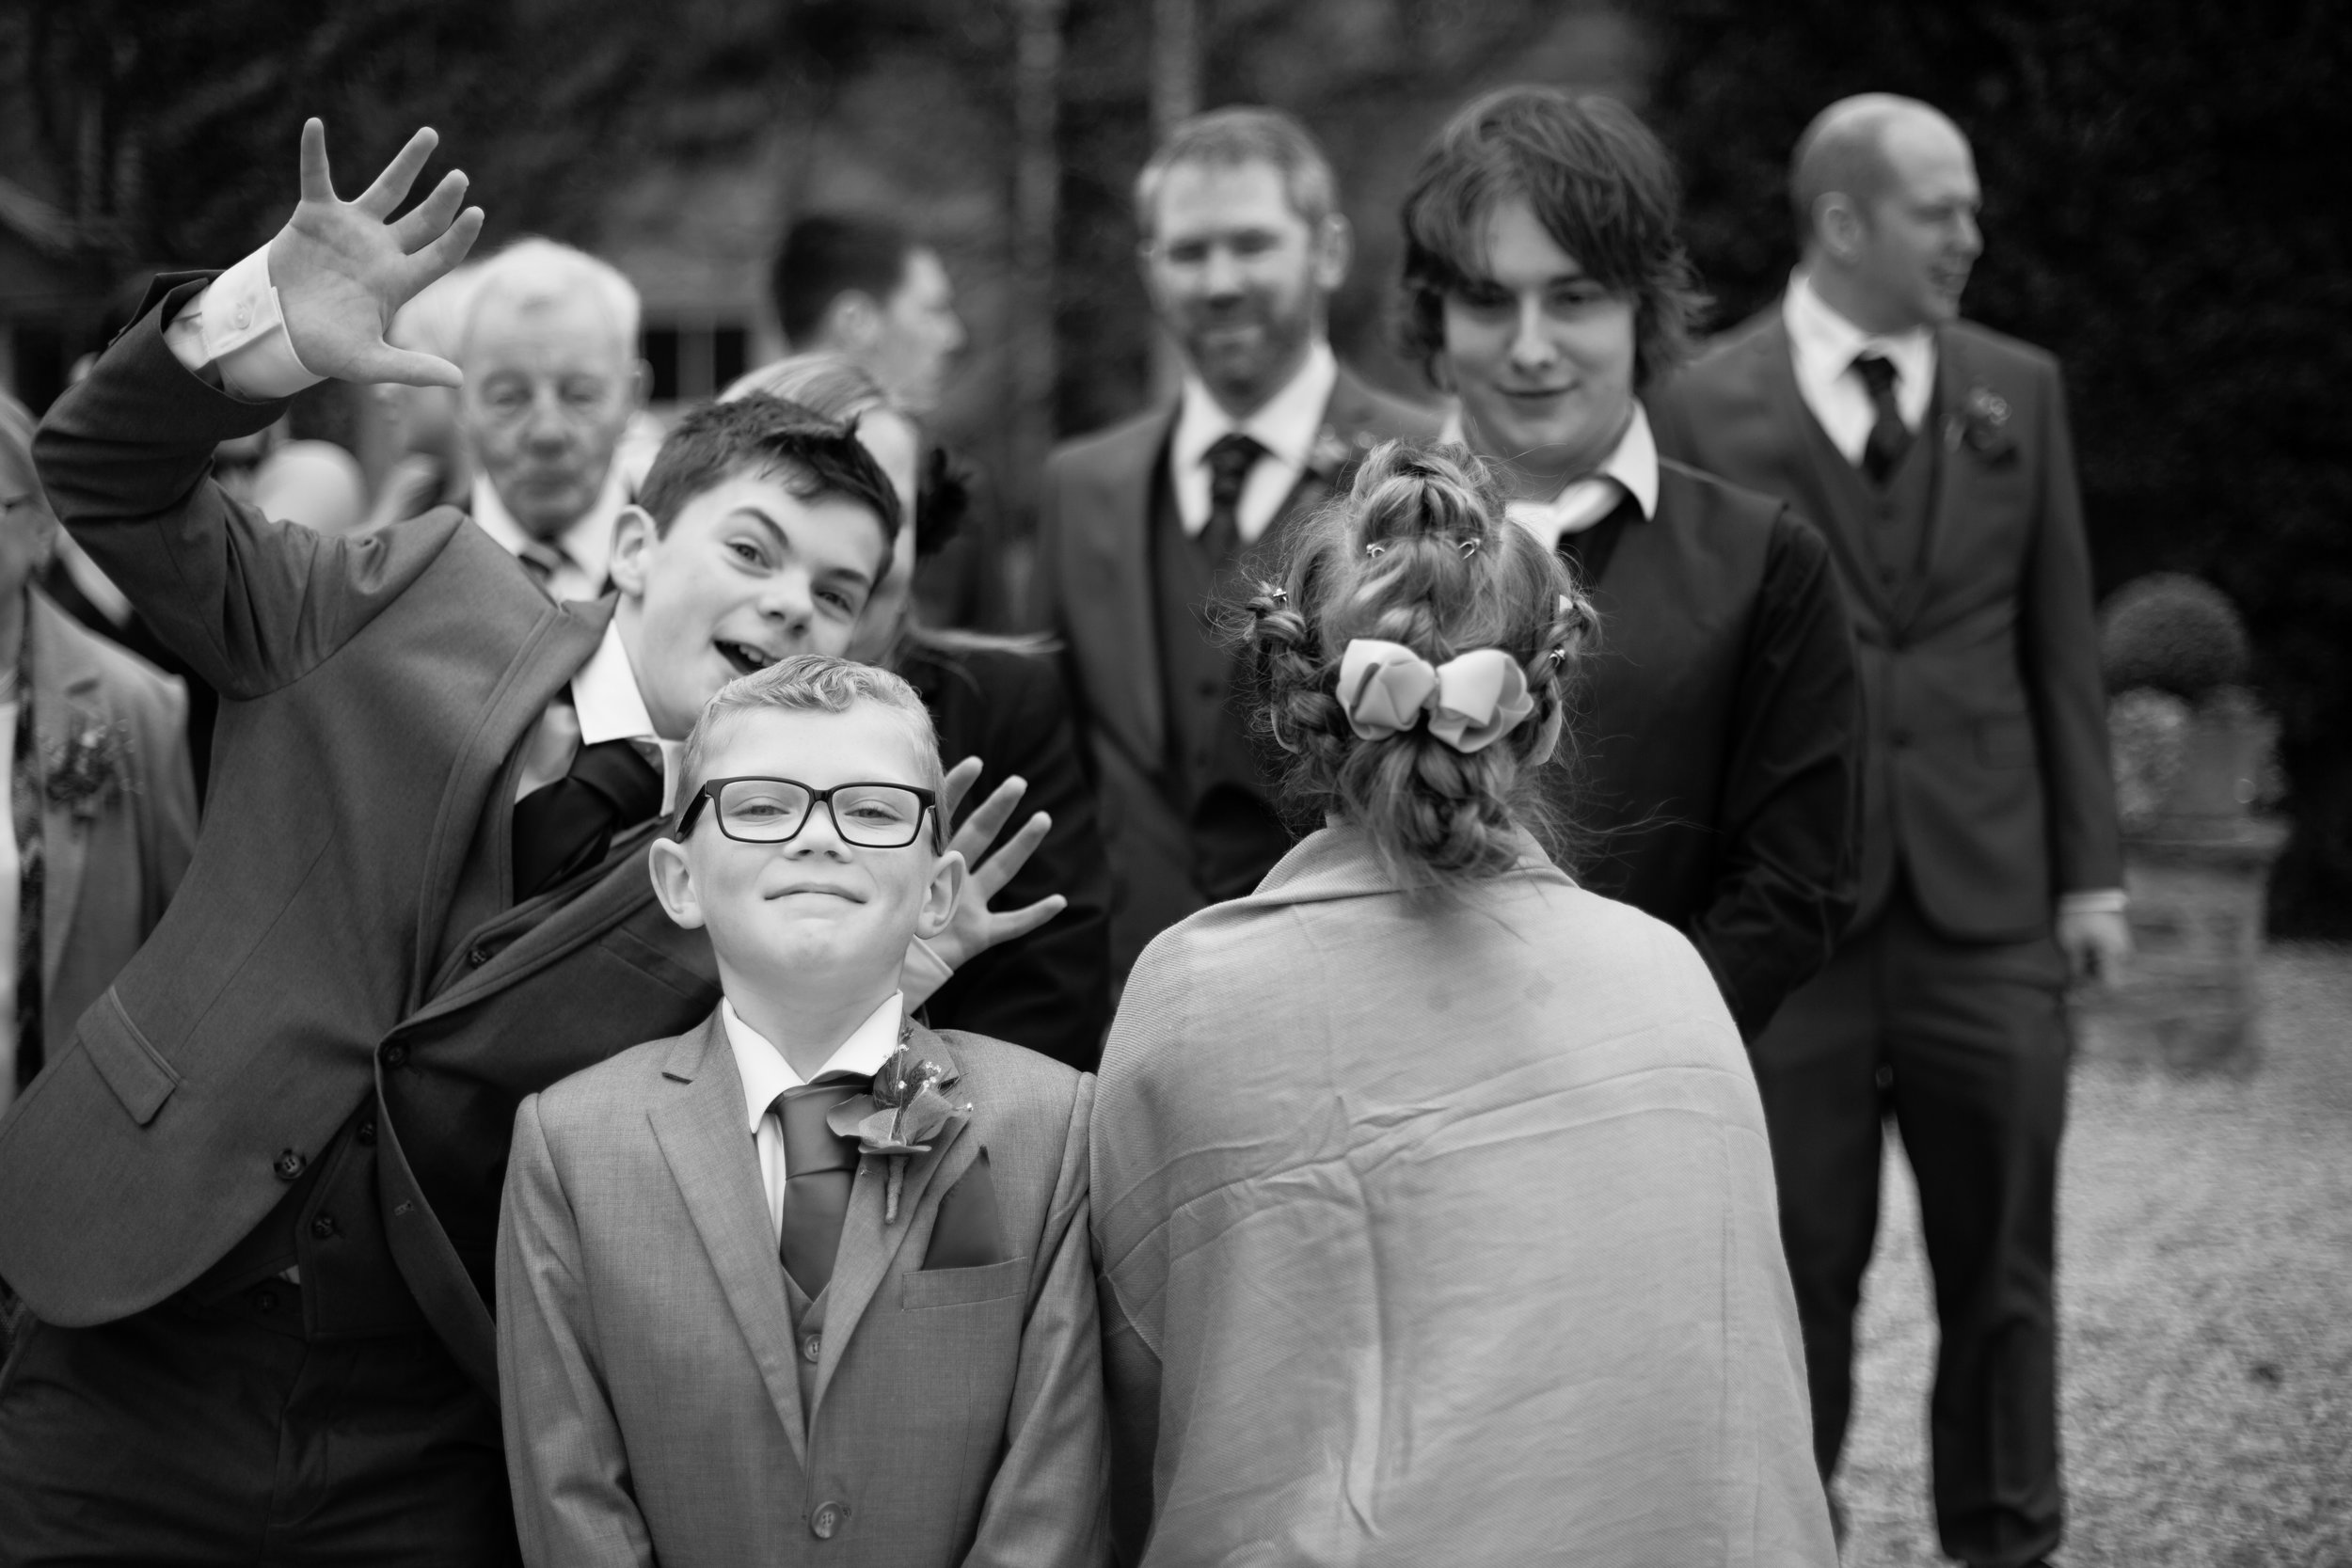 northbrook-park-farnham-hamnpshire-winter-spring-wedding-photography-black-and-white-37